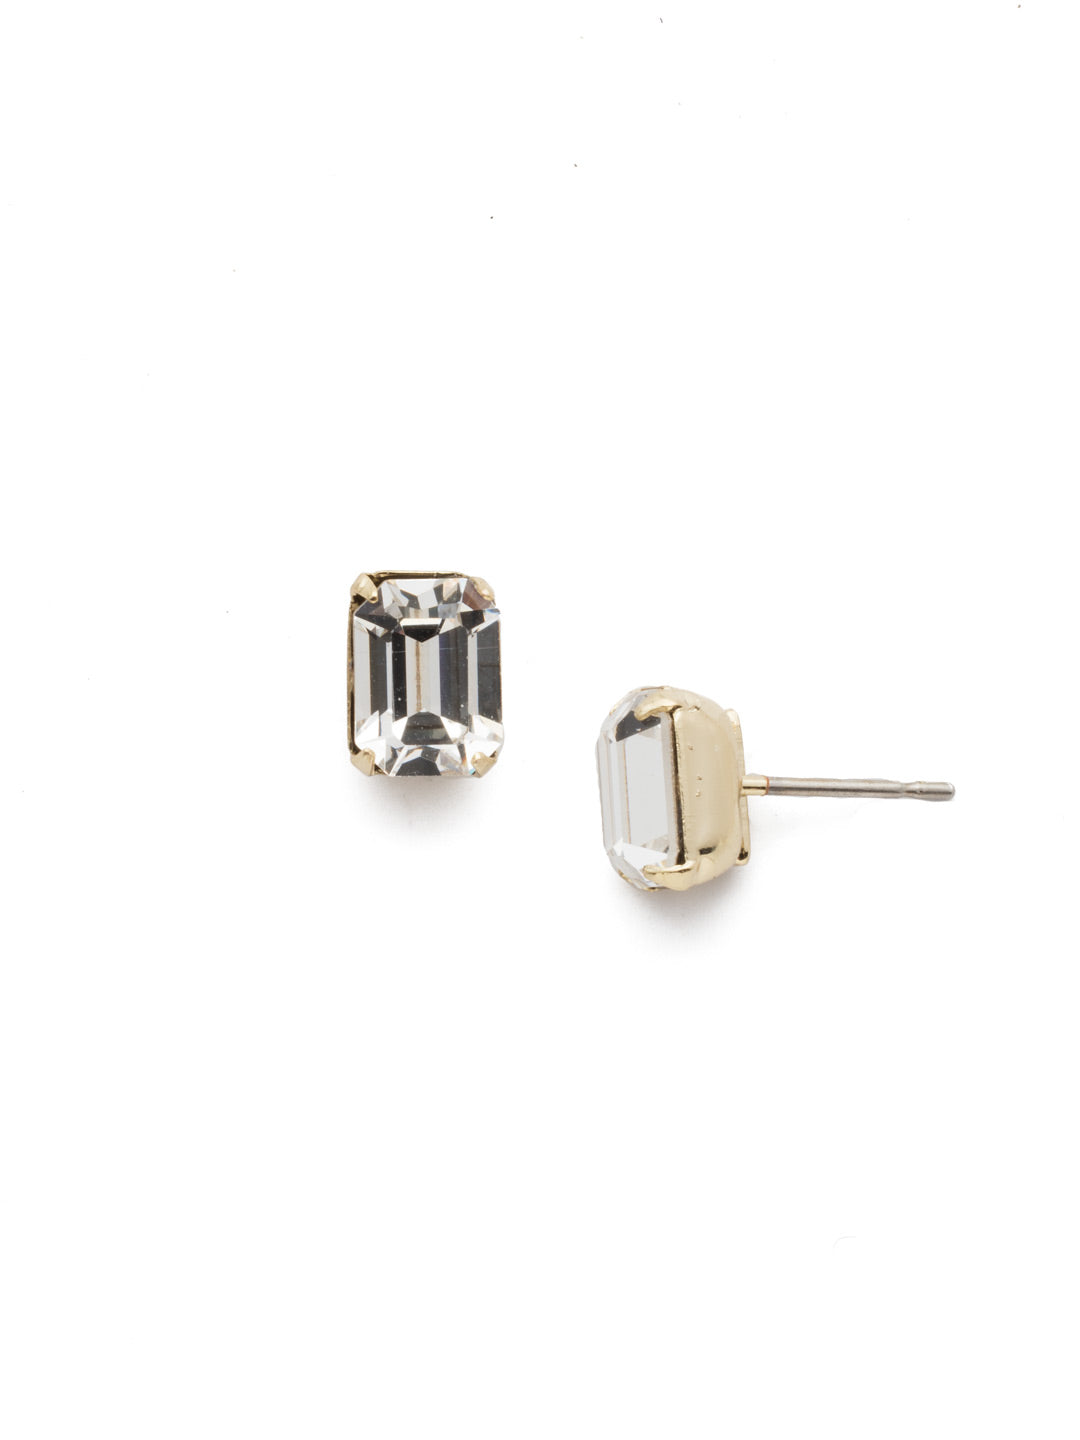 Mini Emerald Cut Stud Earrings - EBY42BGCRY